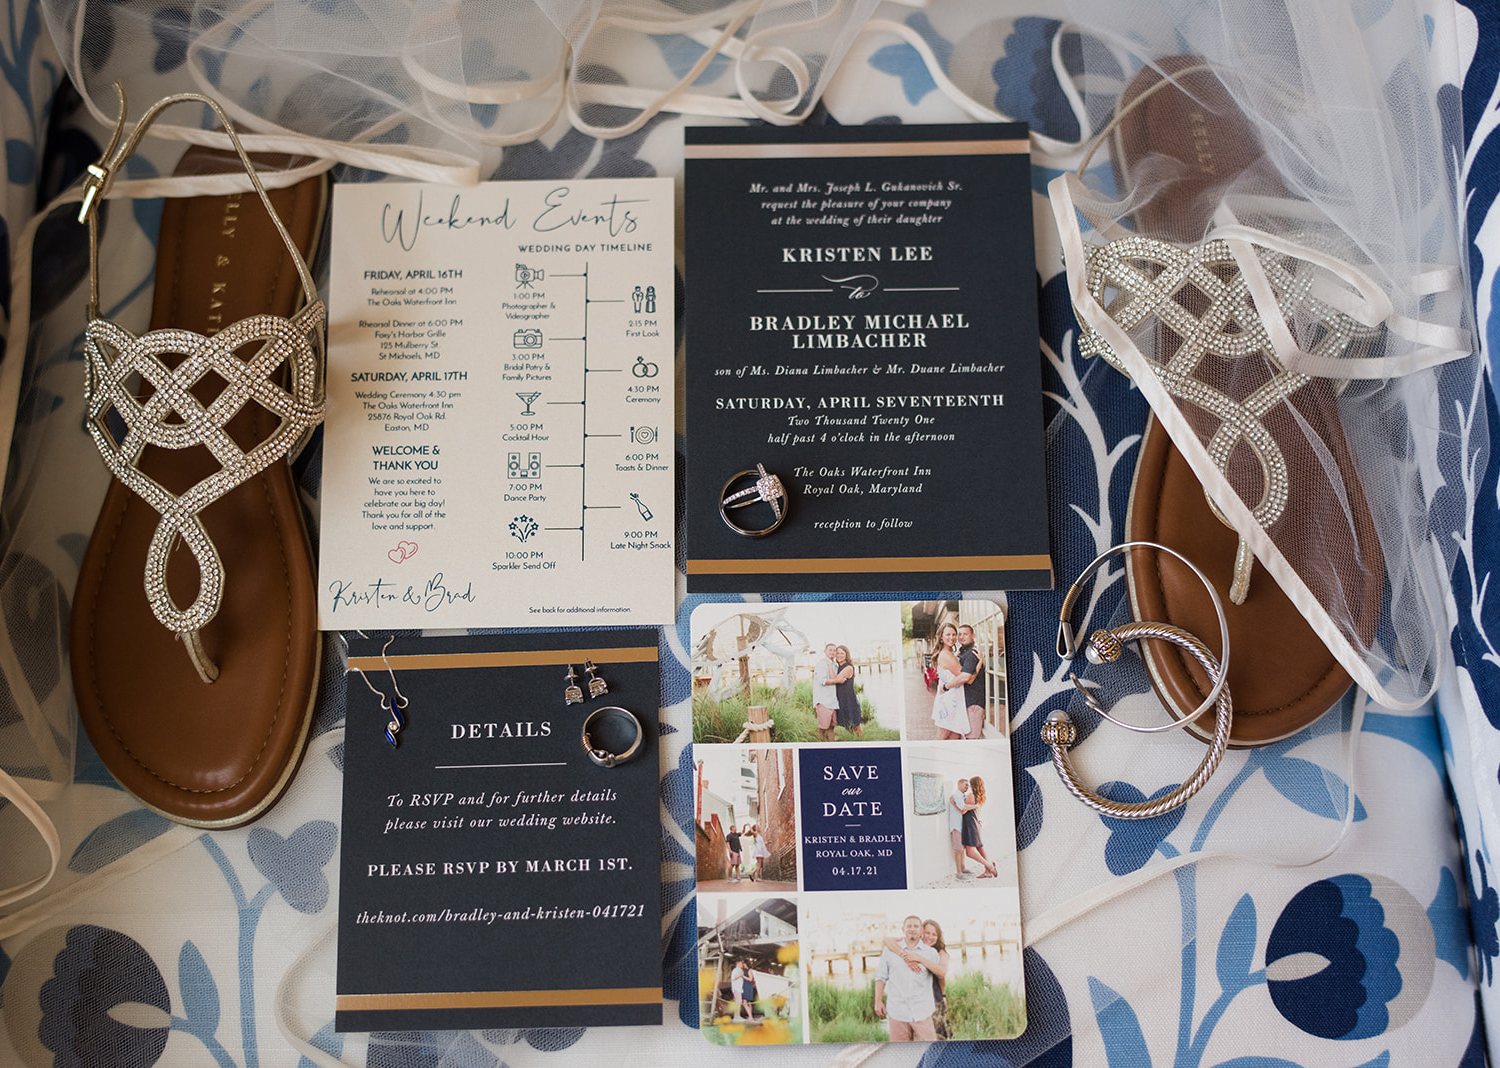 wedding invitation along with the bride's accessories on a flat lay